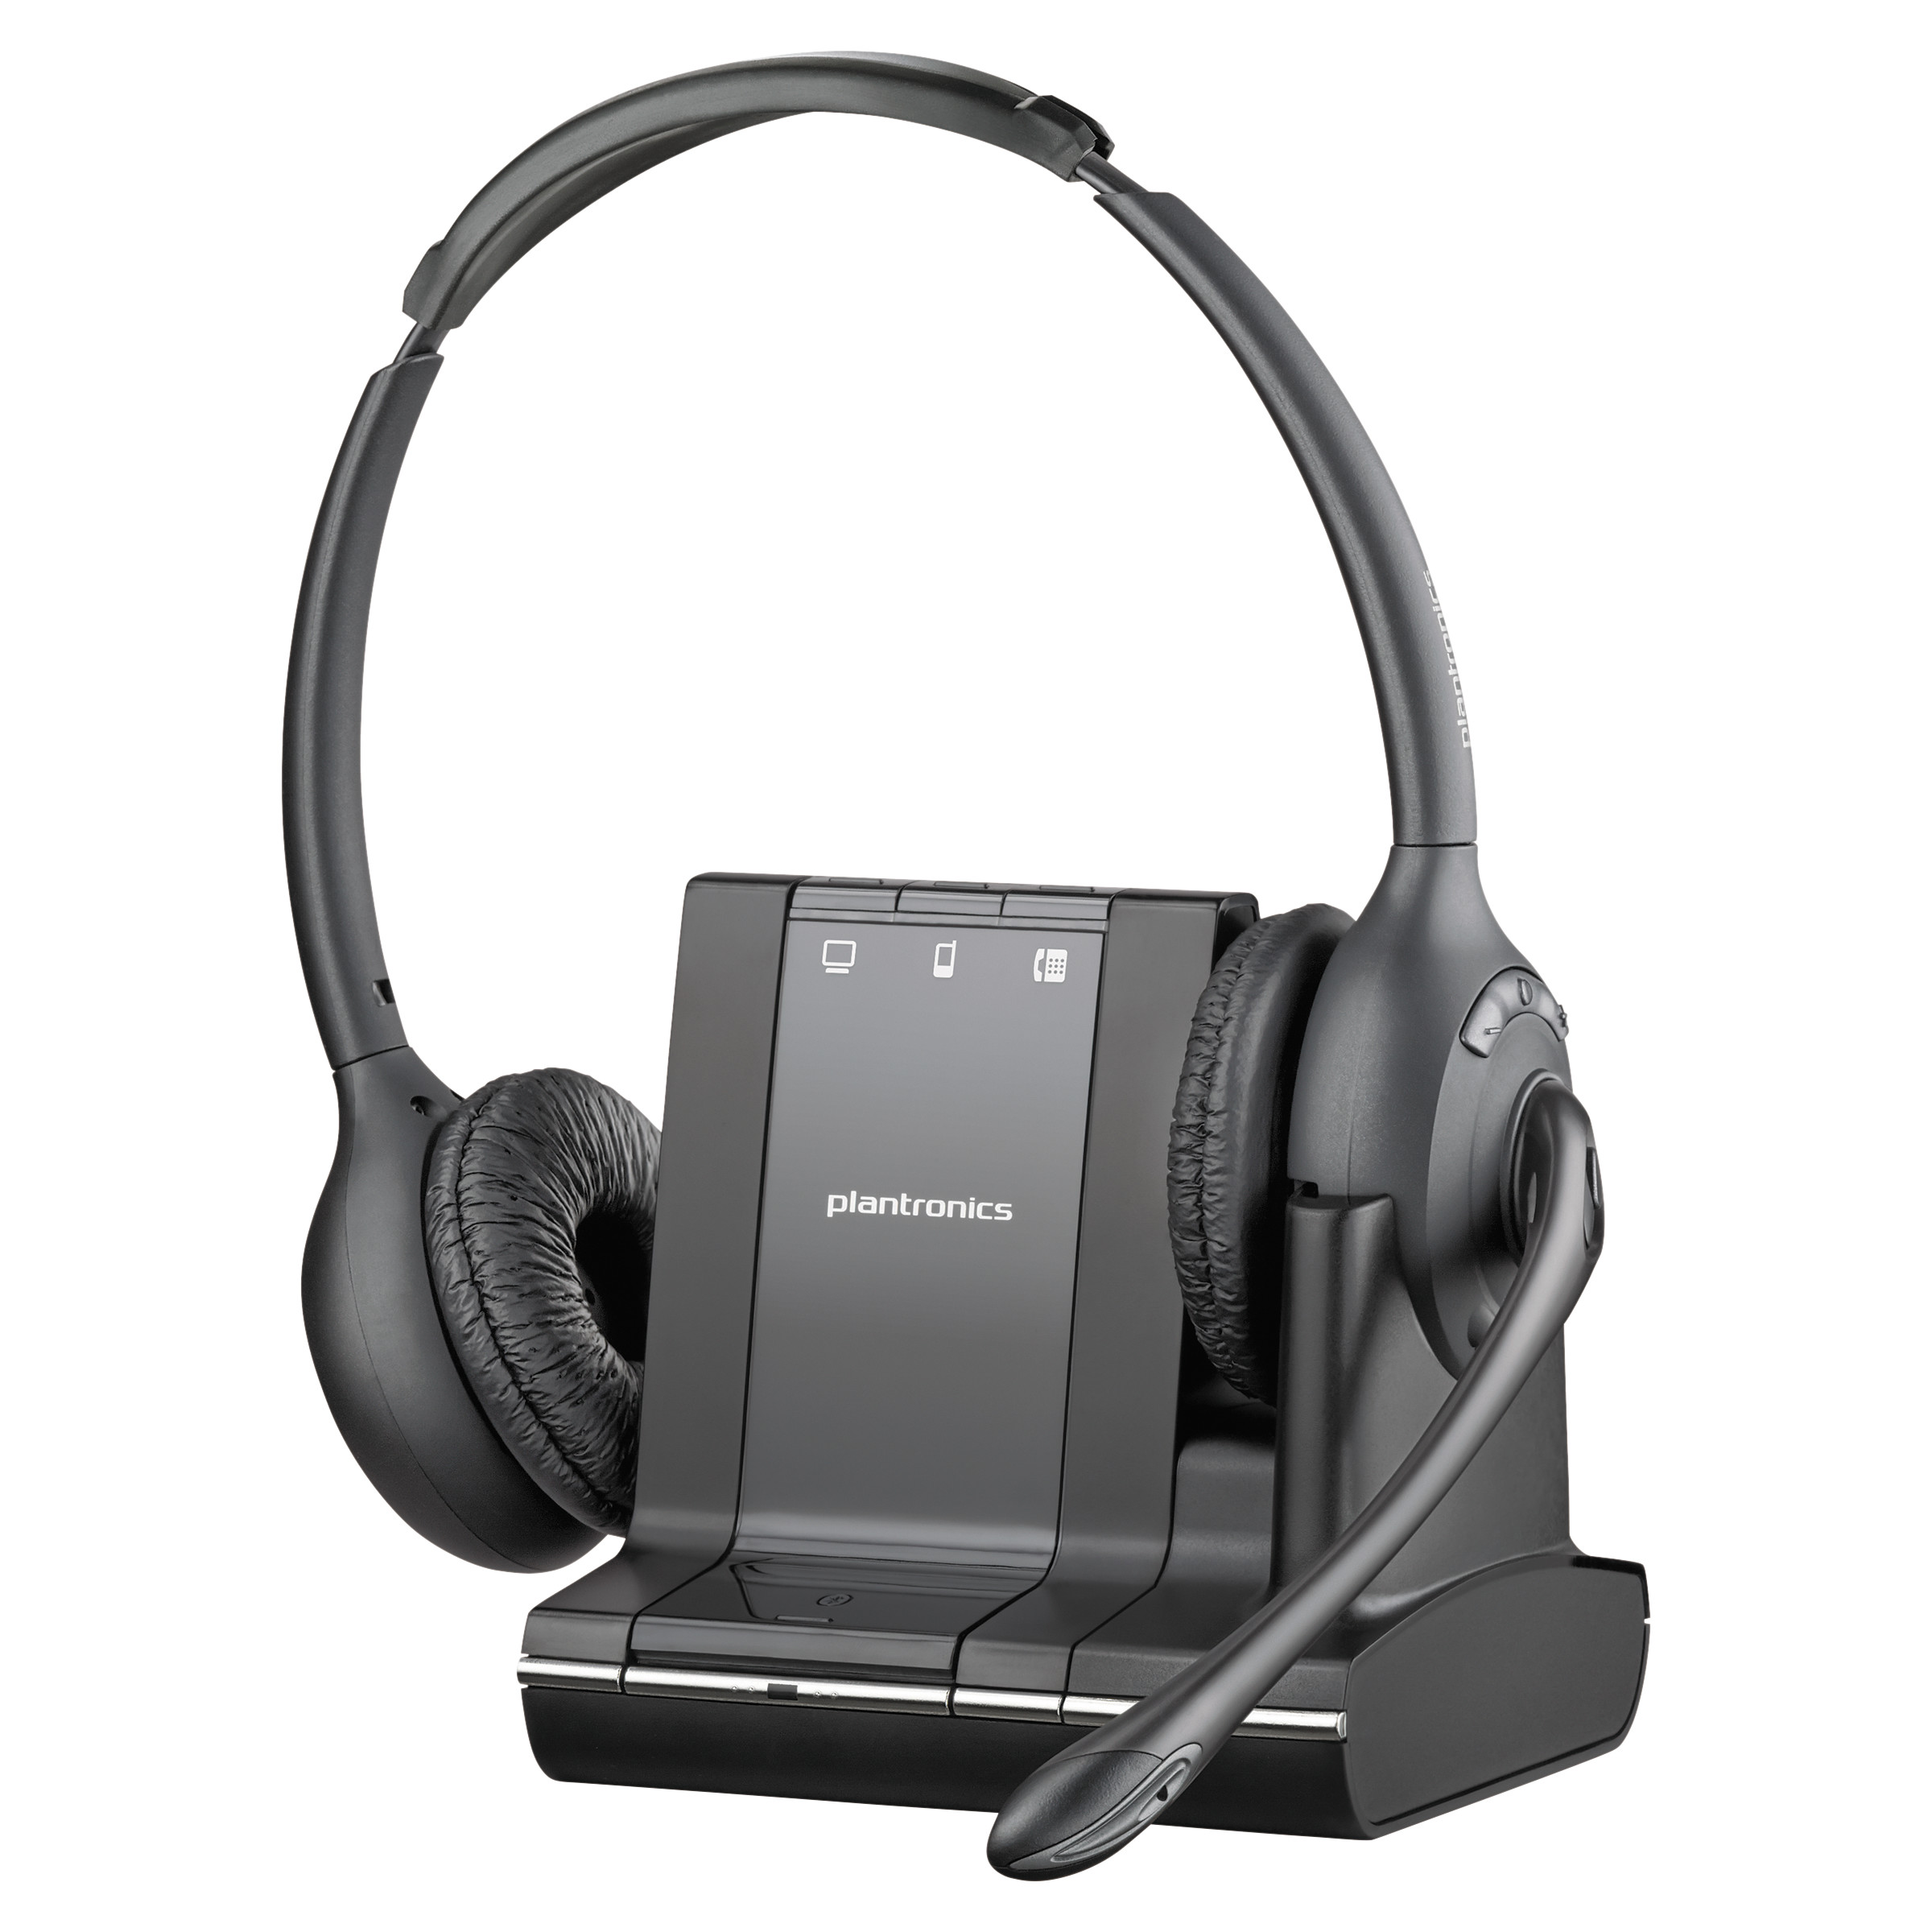 Plantronics Over-the-Head Monaural Phone Headset by Plantronics